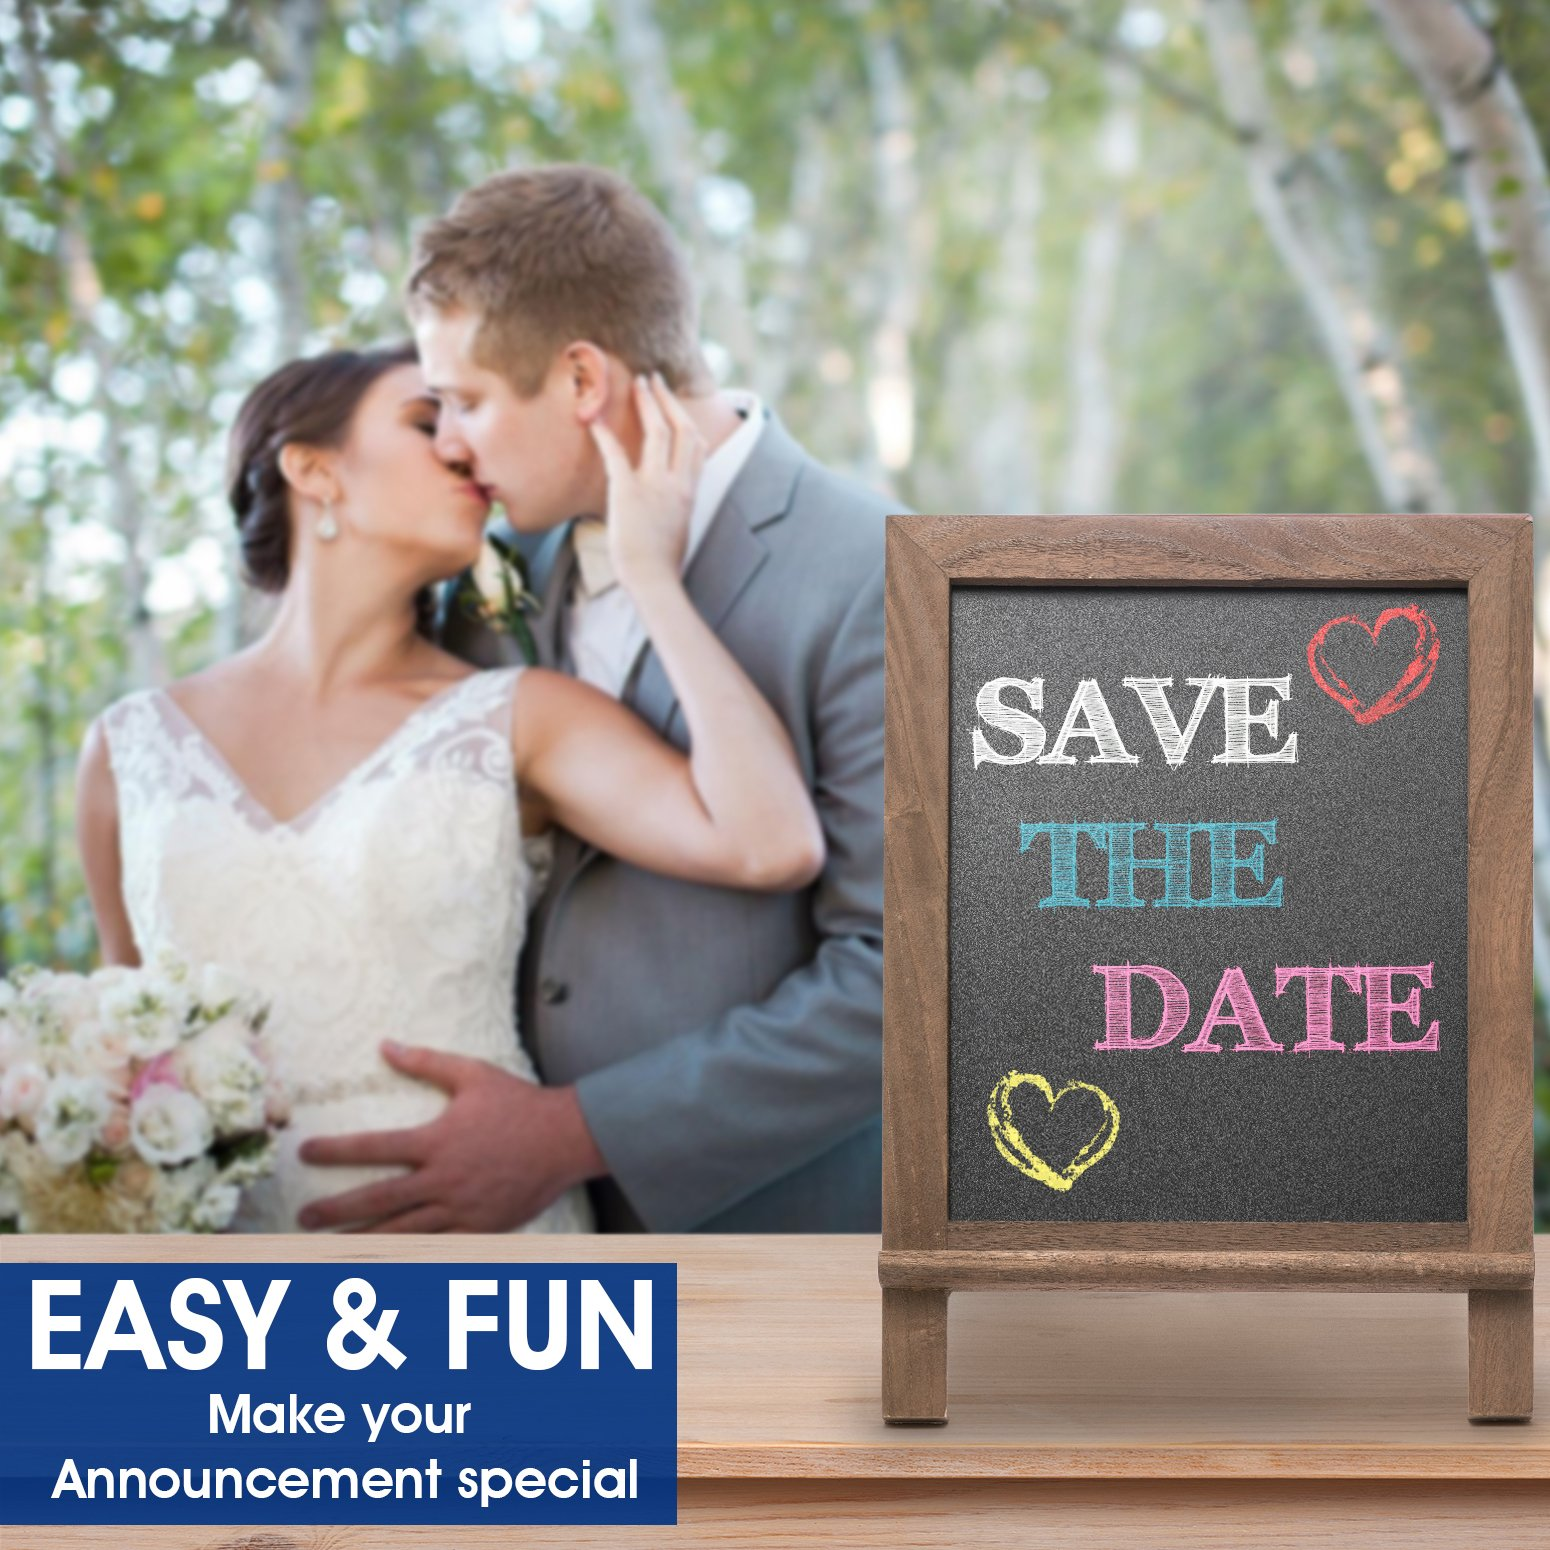 Premium Wood Framed Rustic Standing Chalkboard 12 x 16. Non-Porous Vinyl Surface. For Home, Bars, Restaurants and Weddings - for the Vintage Look! FREE BONUS: 24 chalks + Eraser + Storage Bag by KidisPro (Image #2)